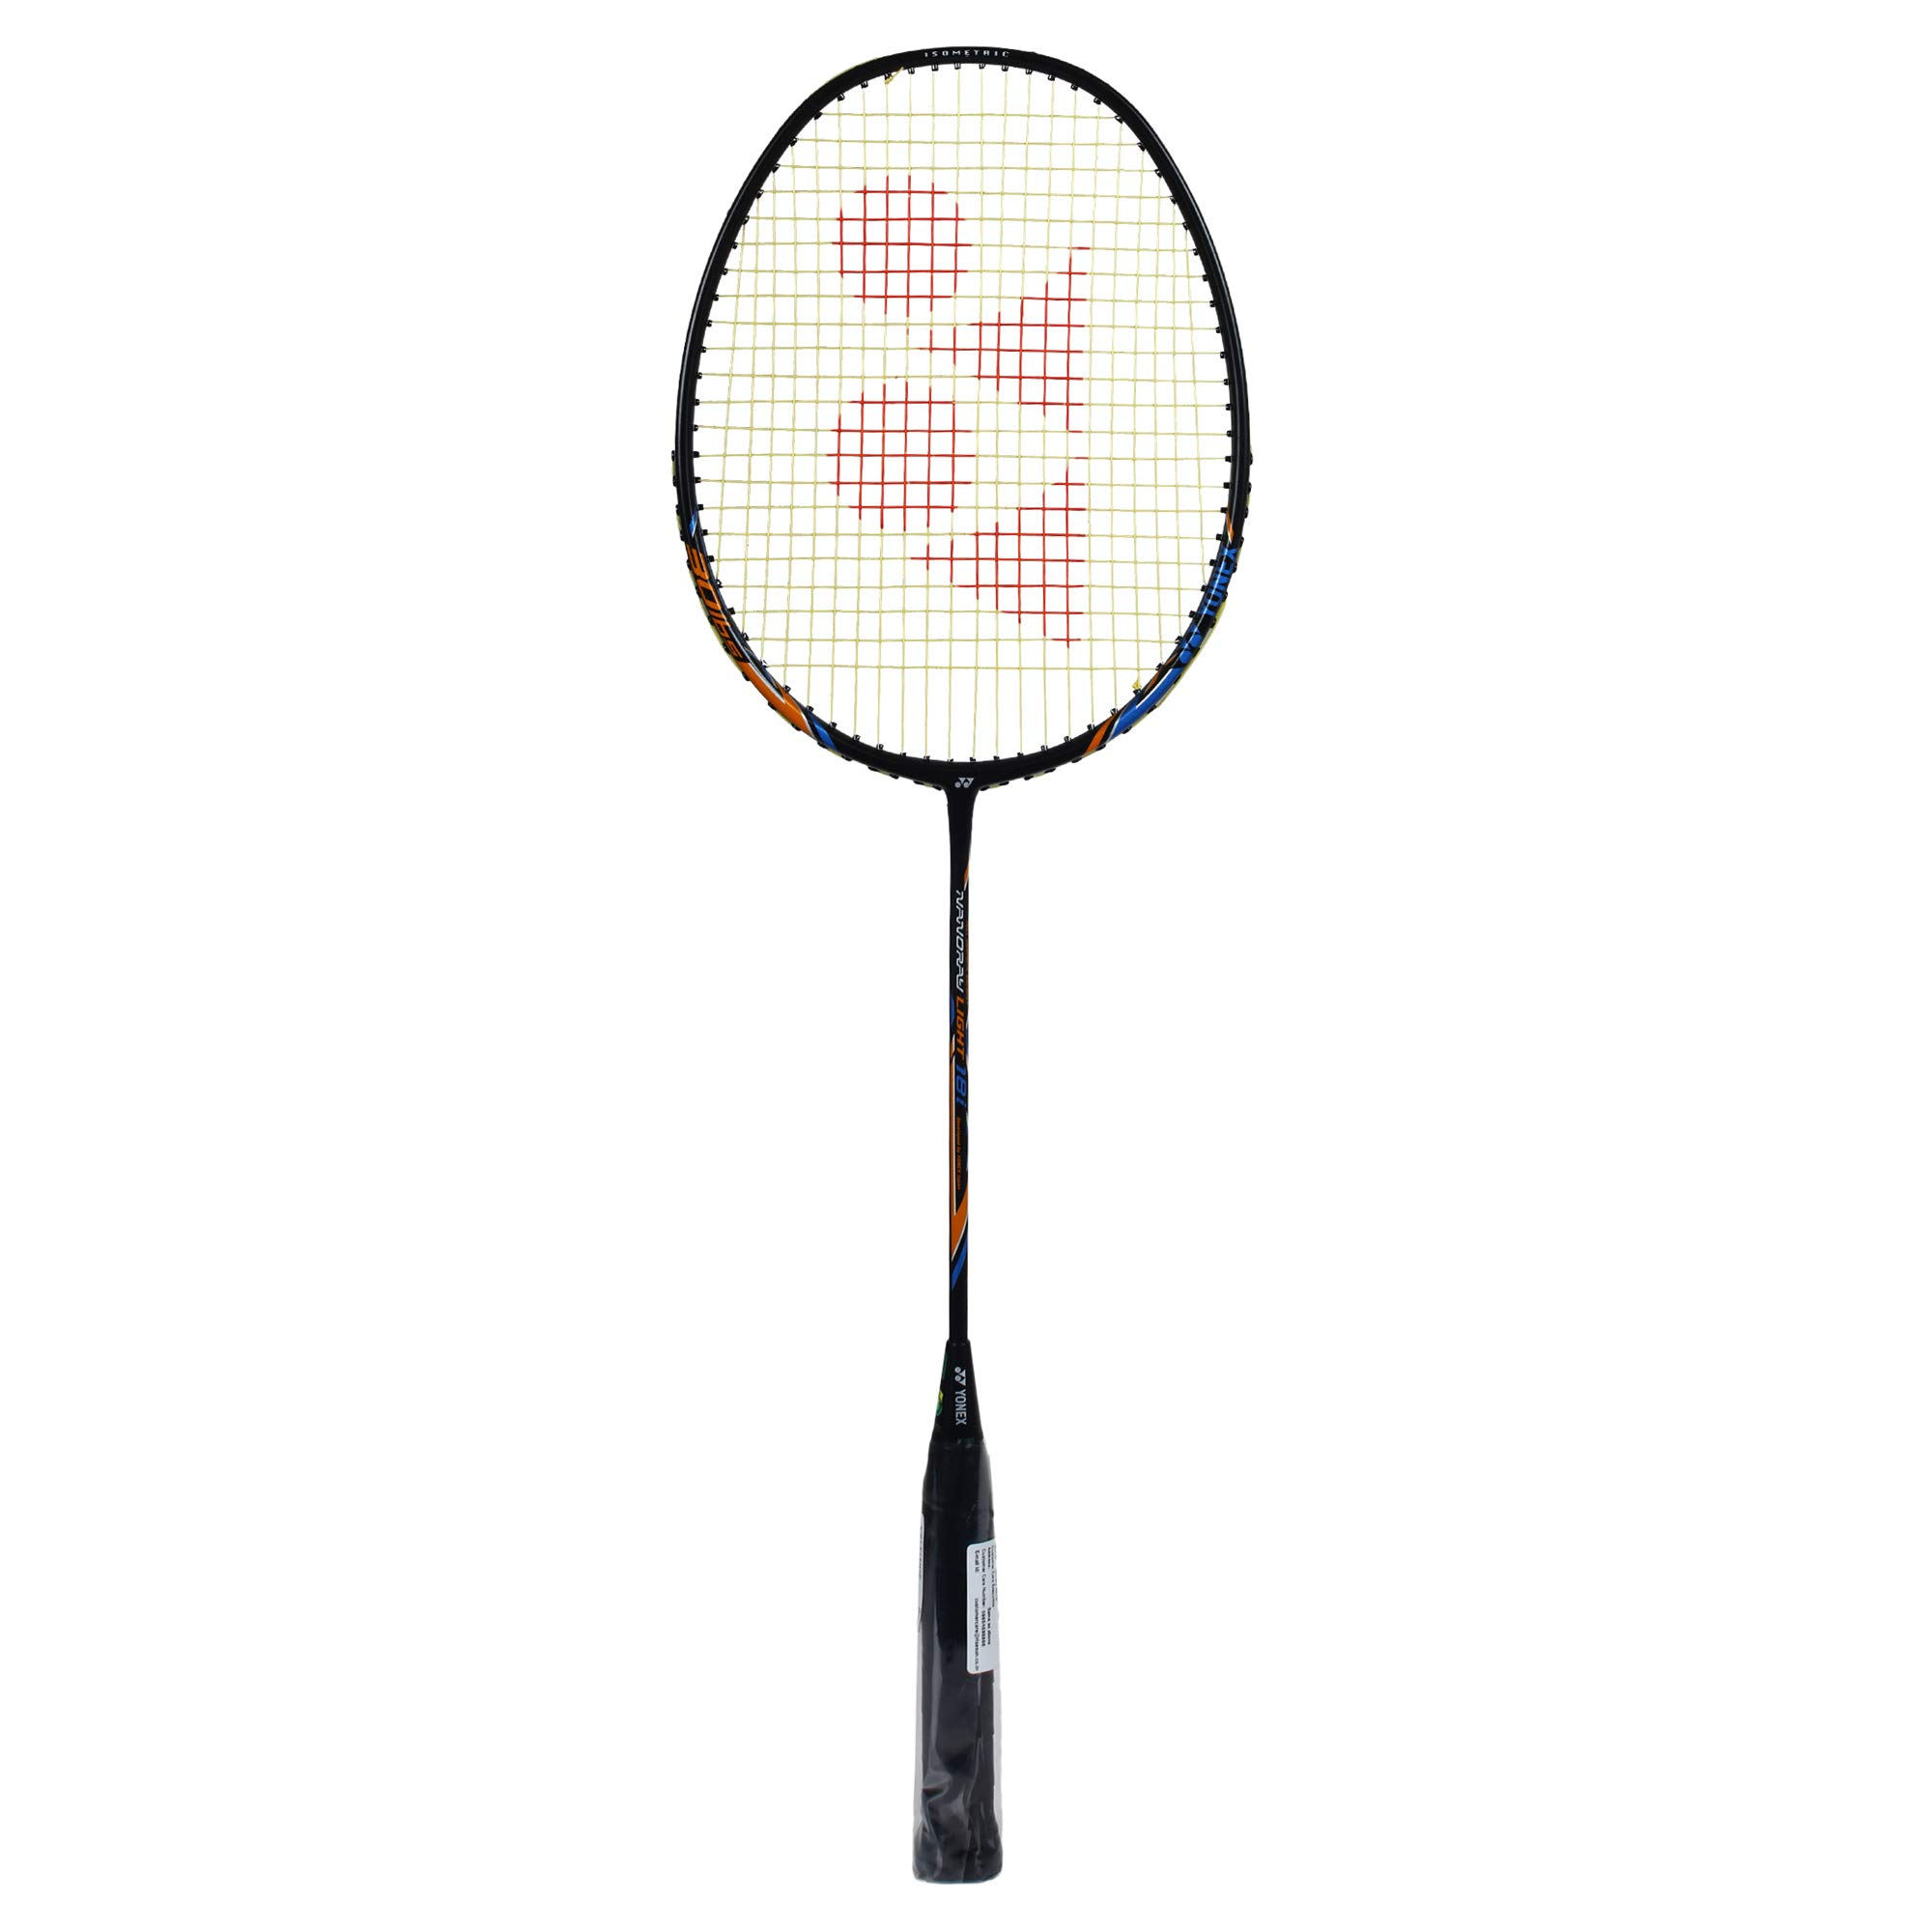 Yonex Nanoray 18i Graphite Badminton Raquet product image